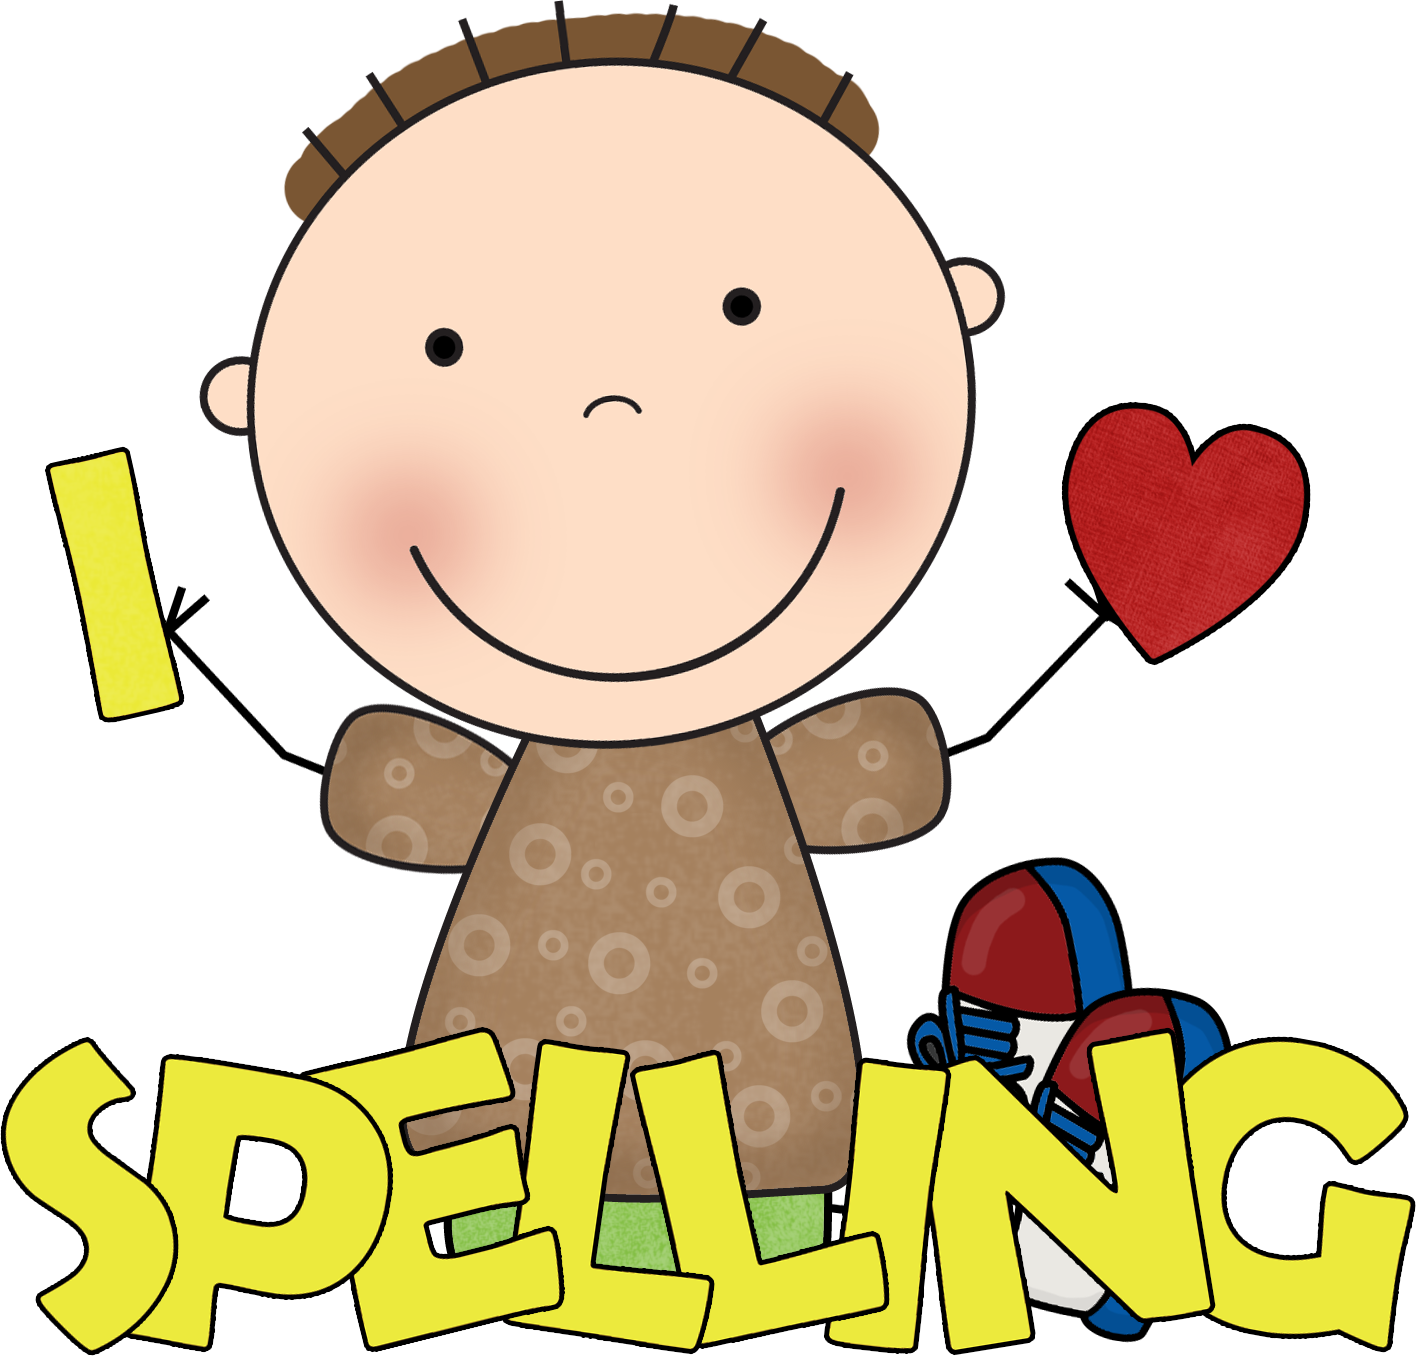 Spellings clipart clipart black and white download Spelling Clip Art & Spelling Clip Art Clip Art Images. | Clipart ... clipart black and white download